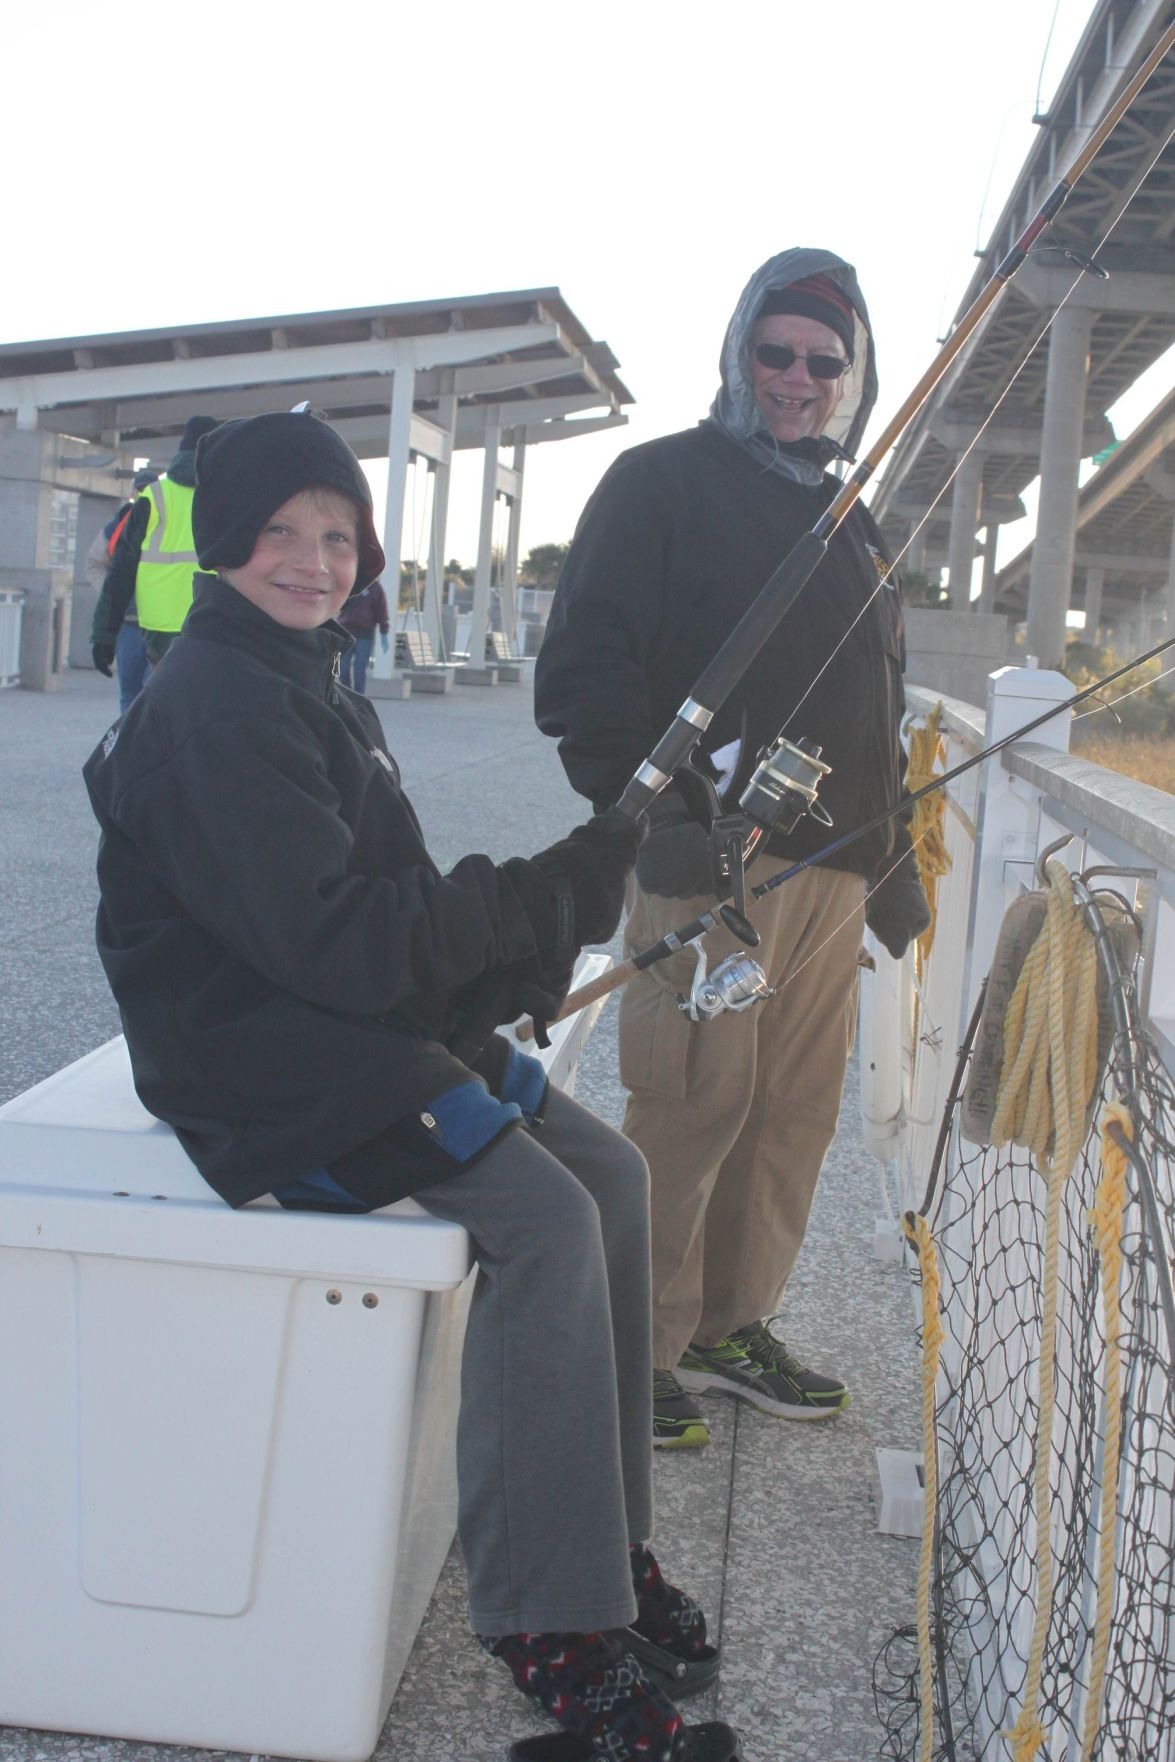 Upcoming youth fishing events are chances to learn